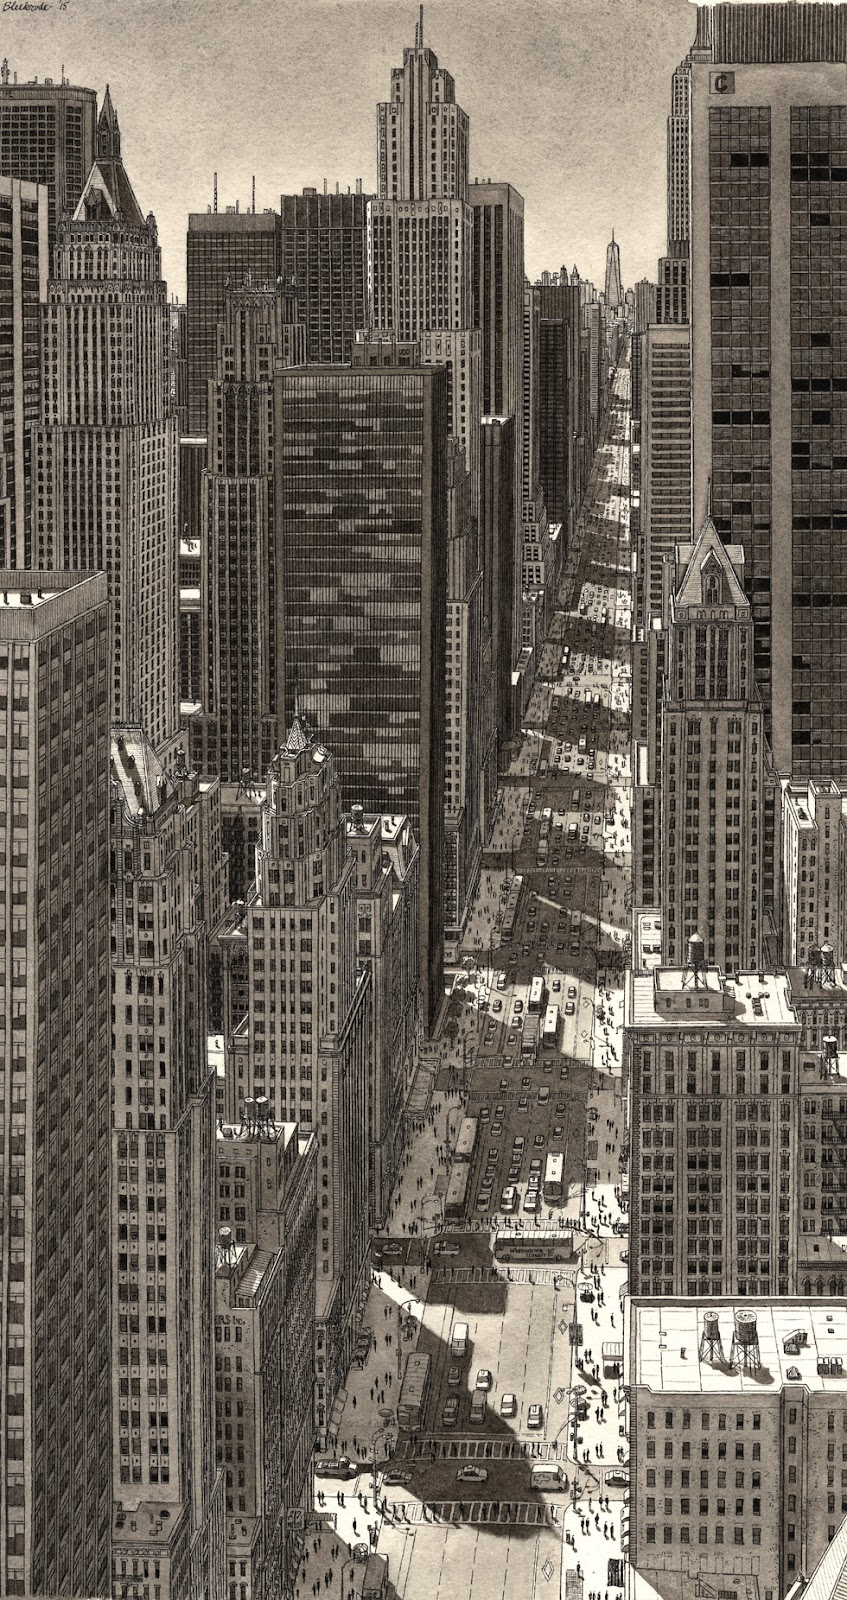 05-NYC-Summer-Shadows-Stefan-Bleekrode-Detailed-Architectural-Drawing-from-the-Imagination-www-designstack-co